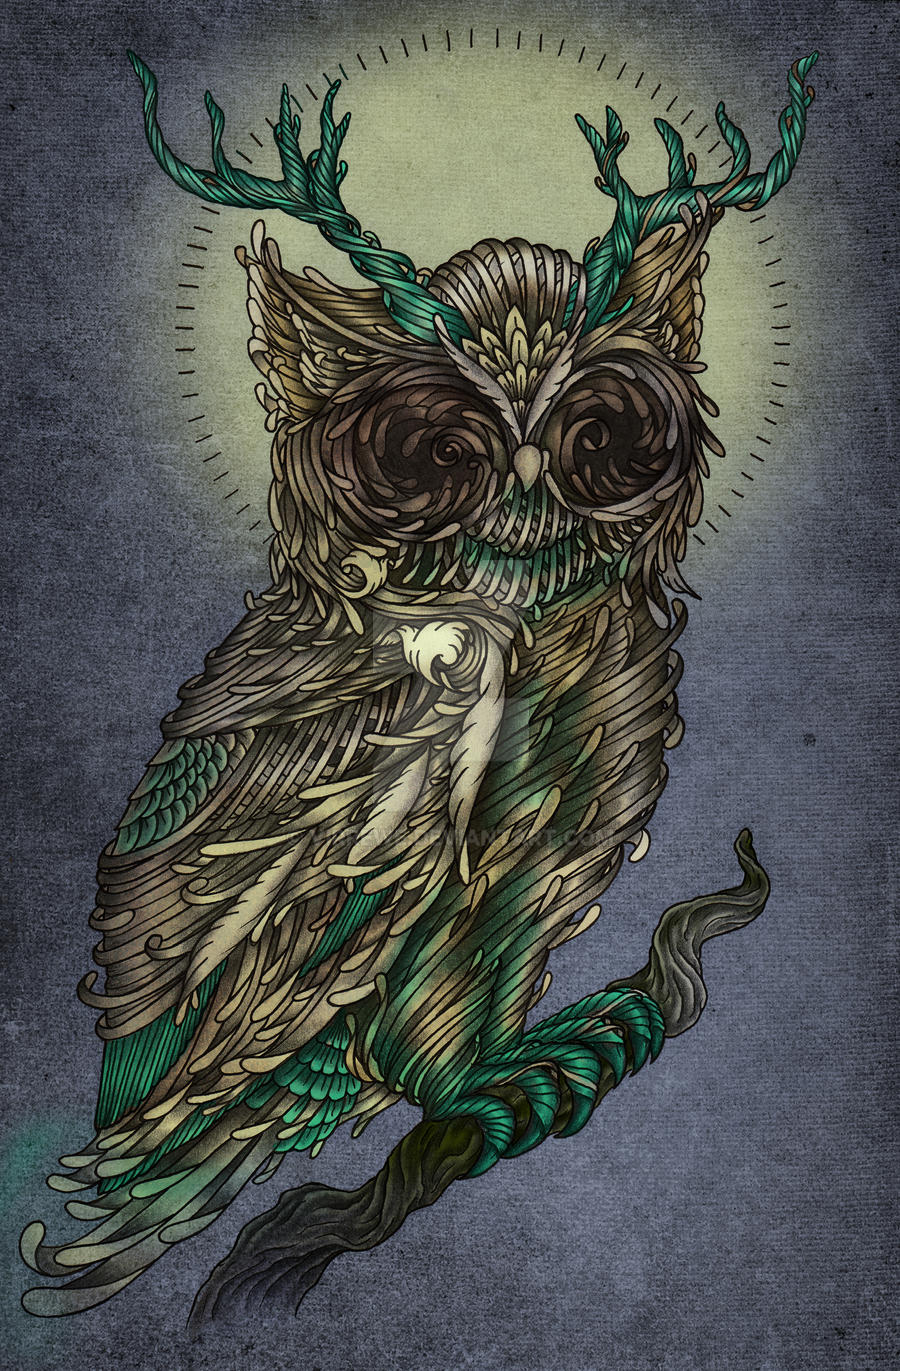 The Owlking by virrewe